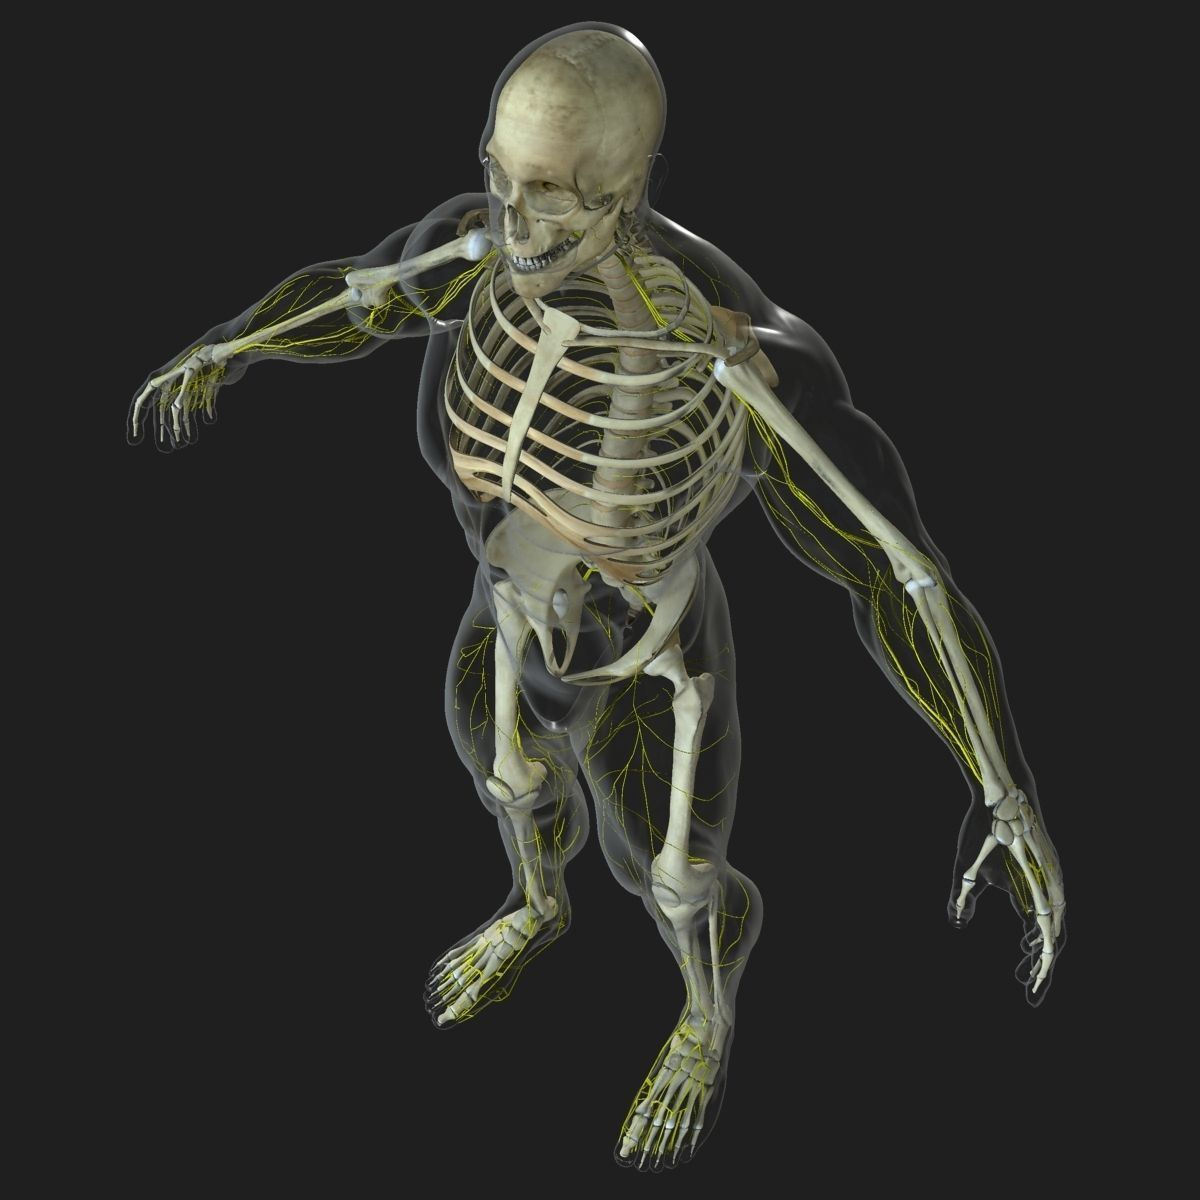 Human Central Nervous System with Skeleton | 3D model | 3D ...